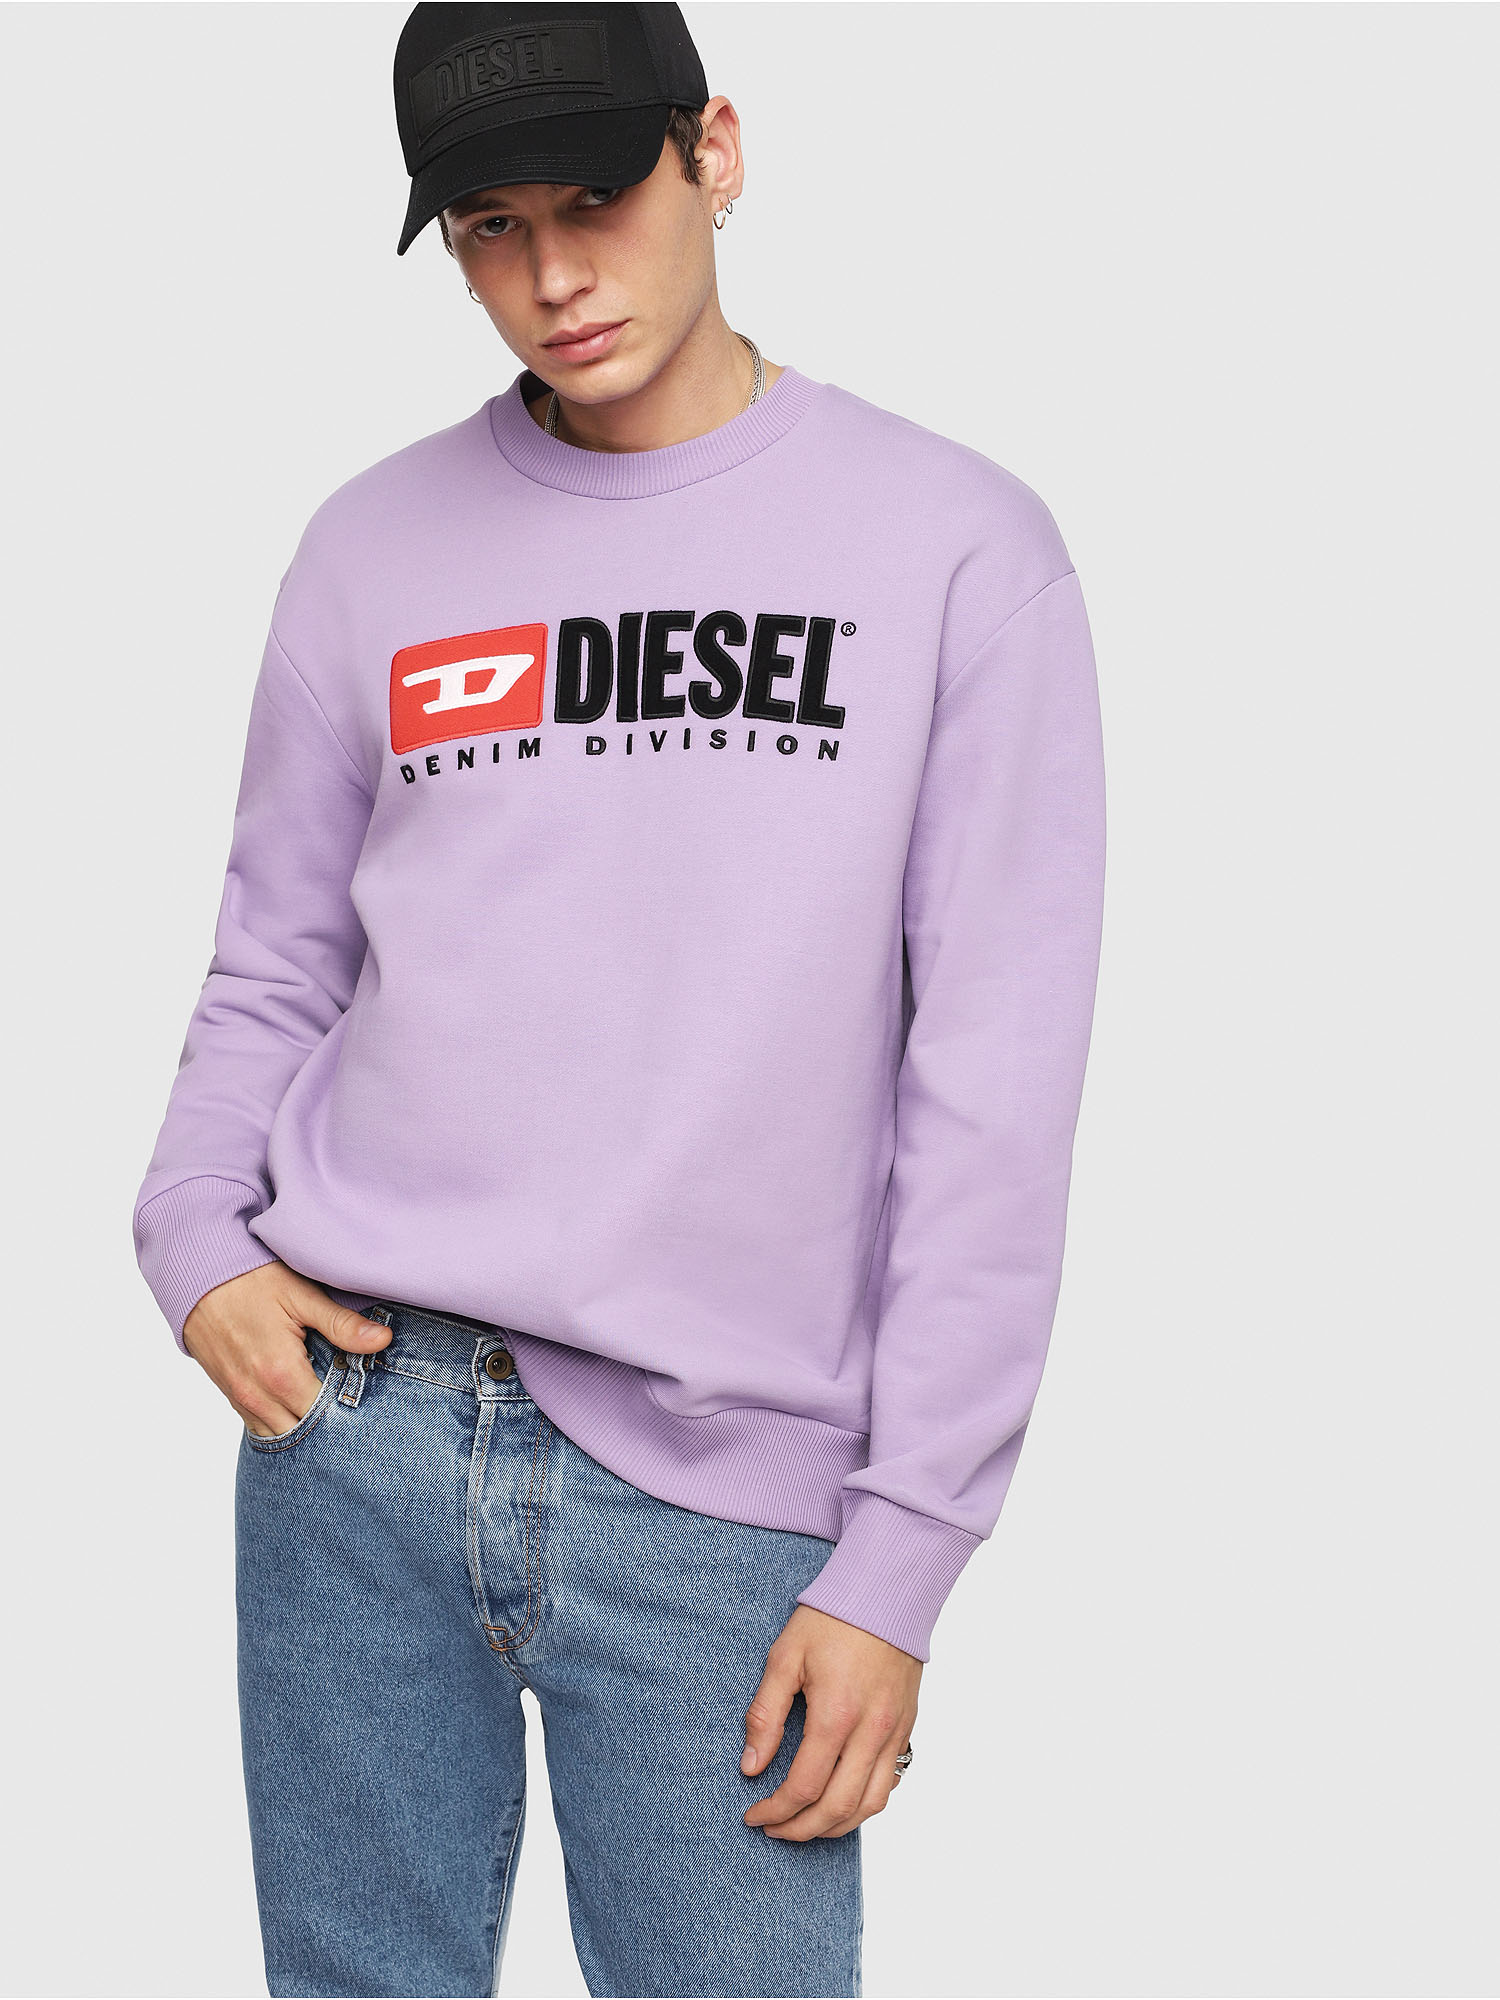 Diesel - S-CREW-DIVISION,  - Sweaters - Image 4